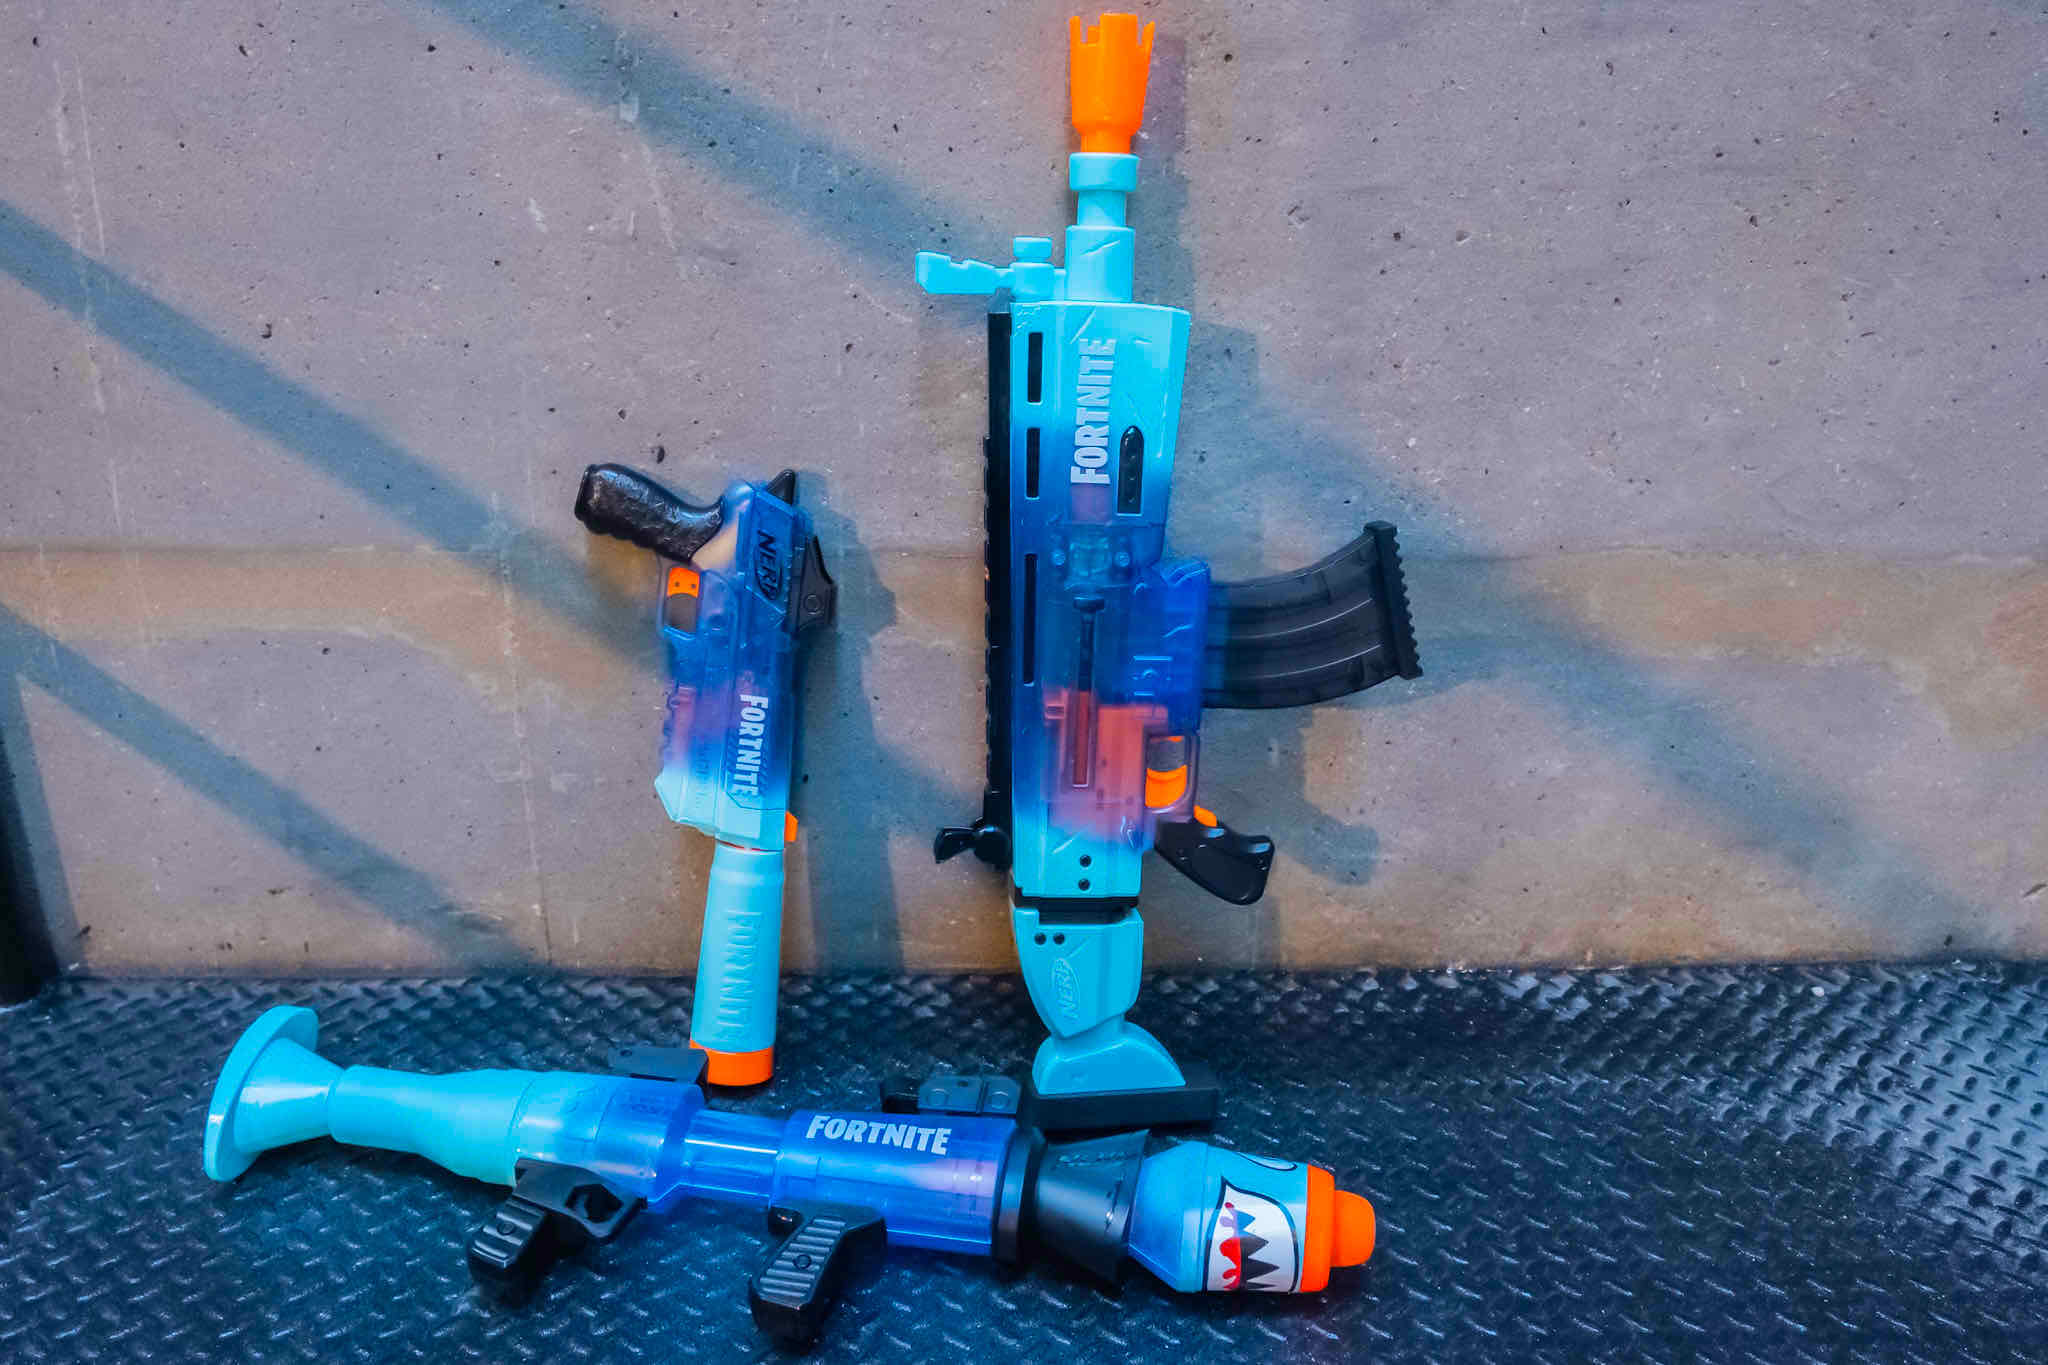 Nerf's 2020 Fortnite blasters are now available to purchase 24